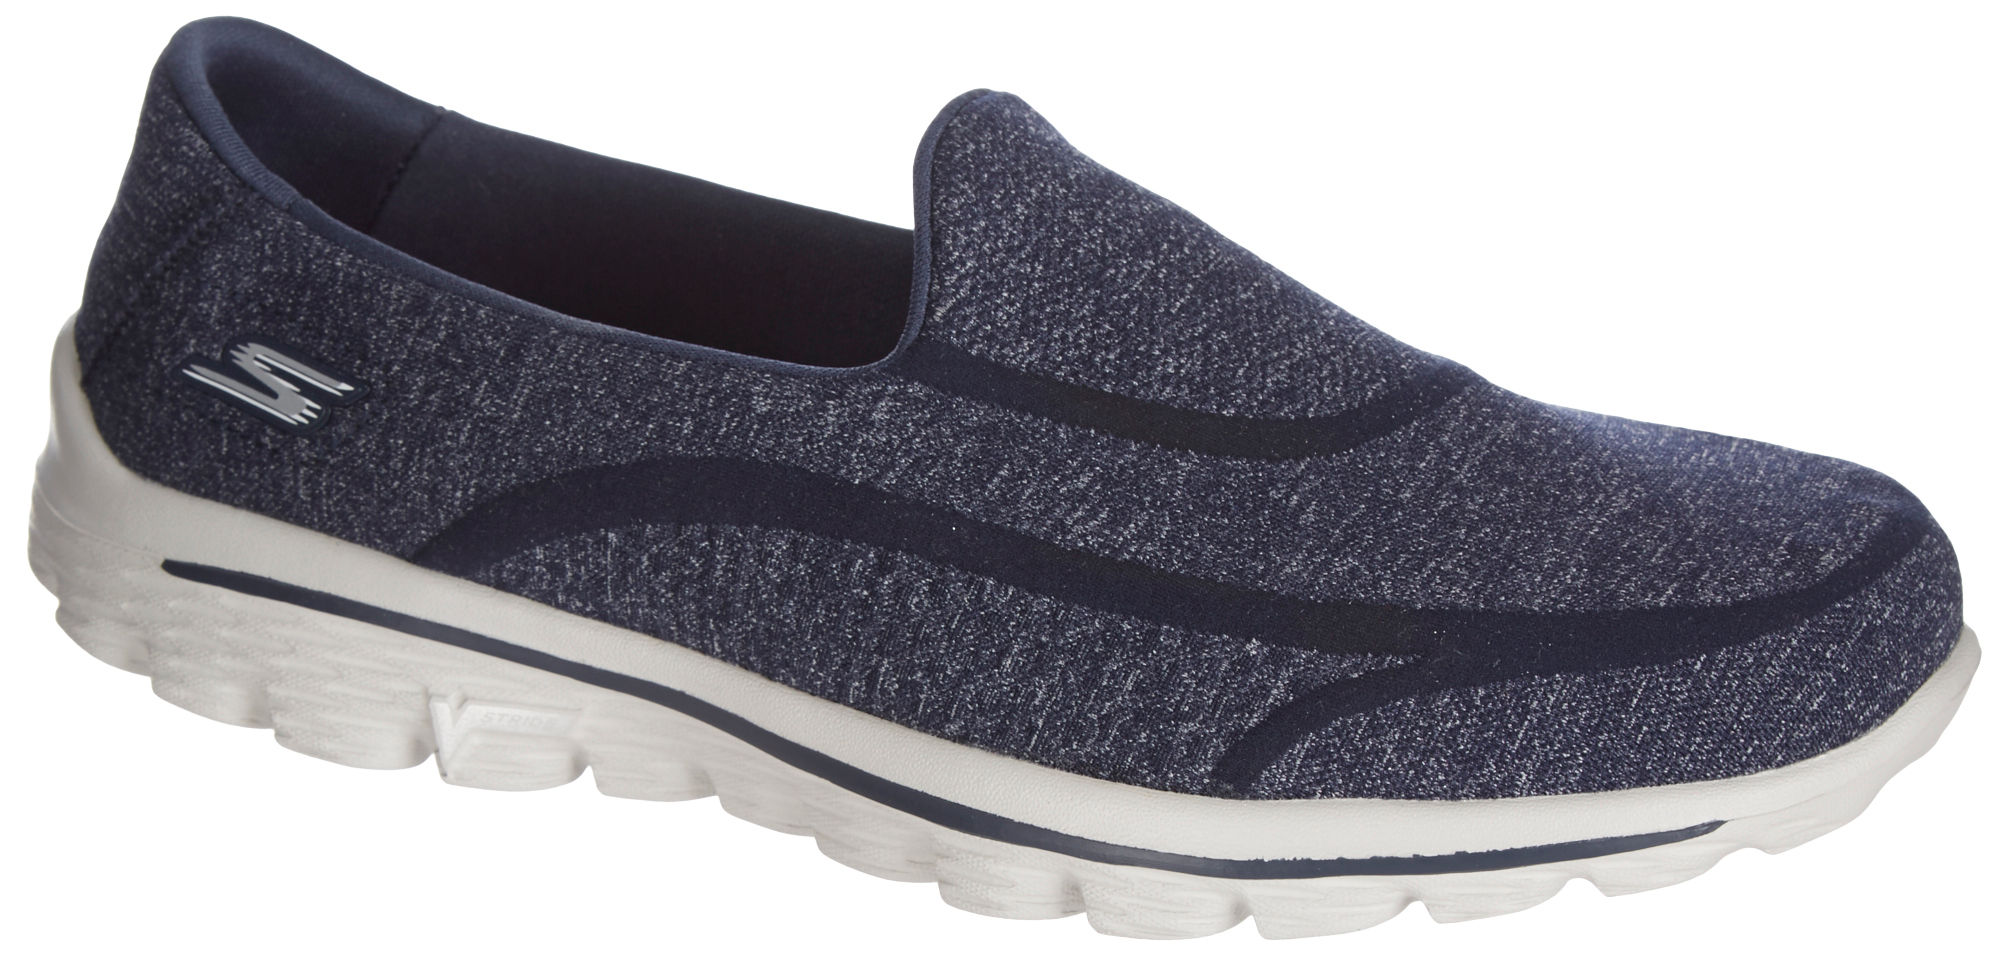 skechers womens gowalk 2 slip on walking shoes ebay